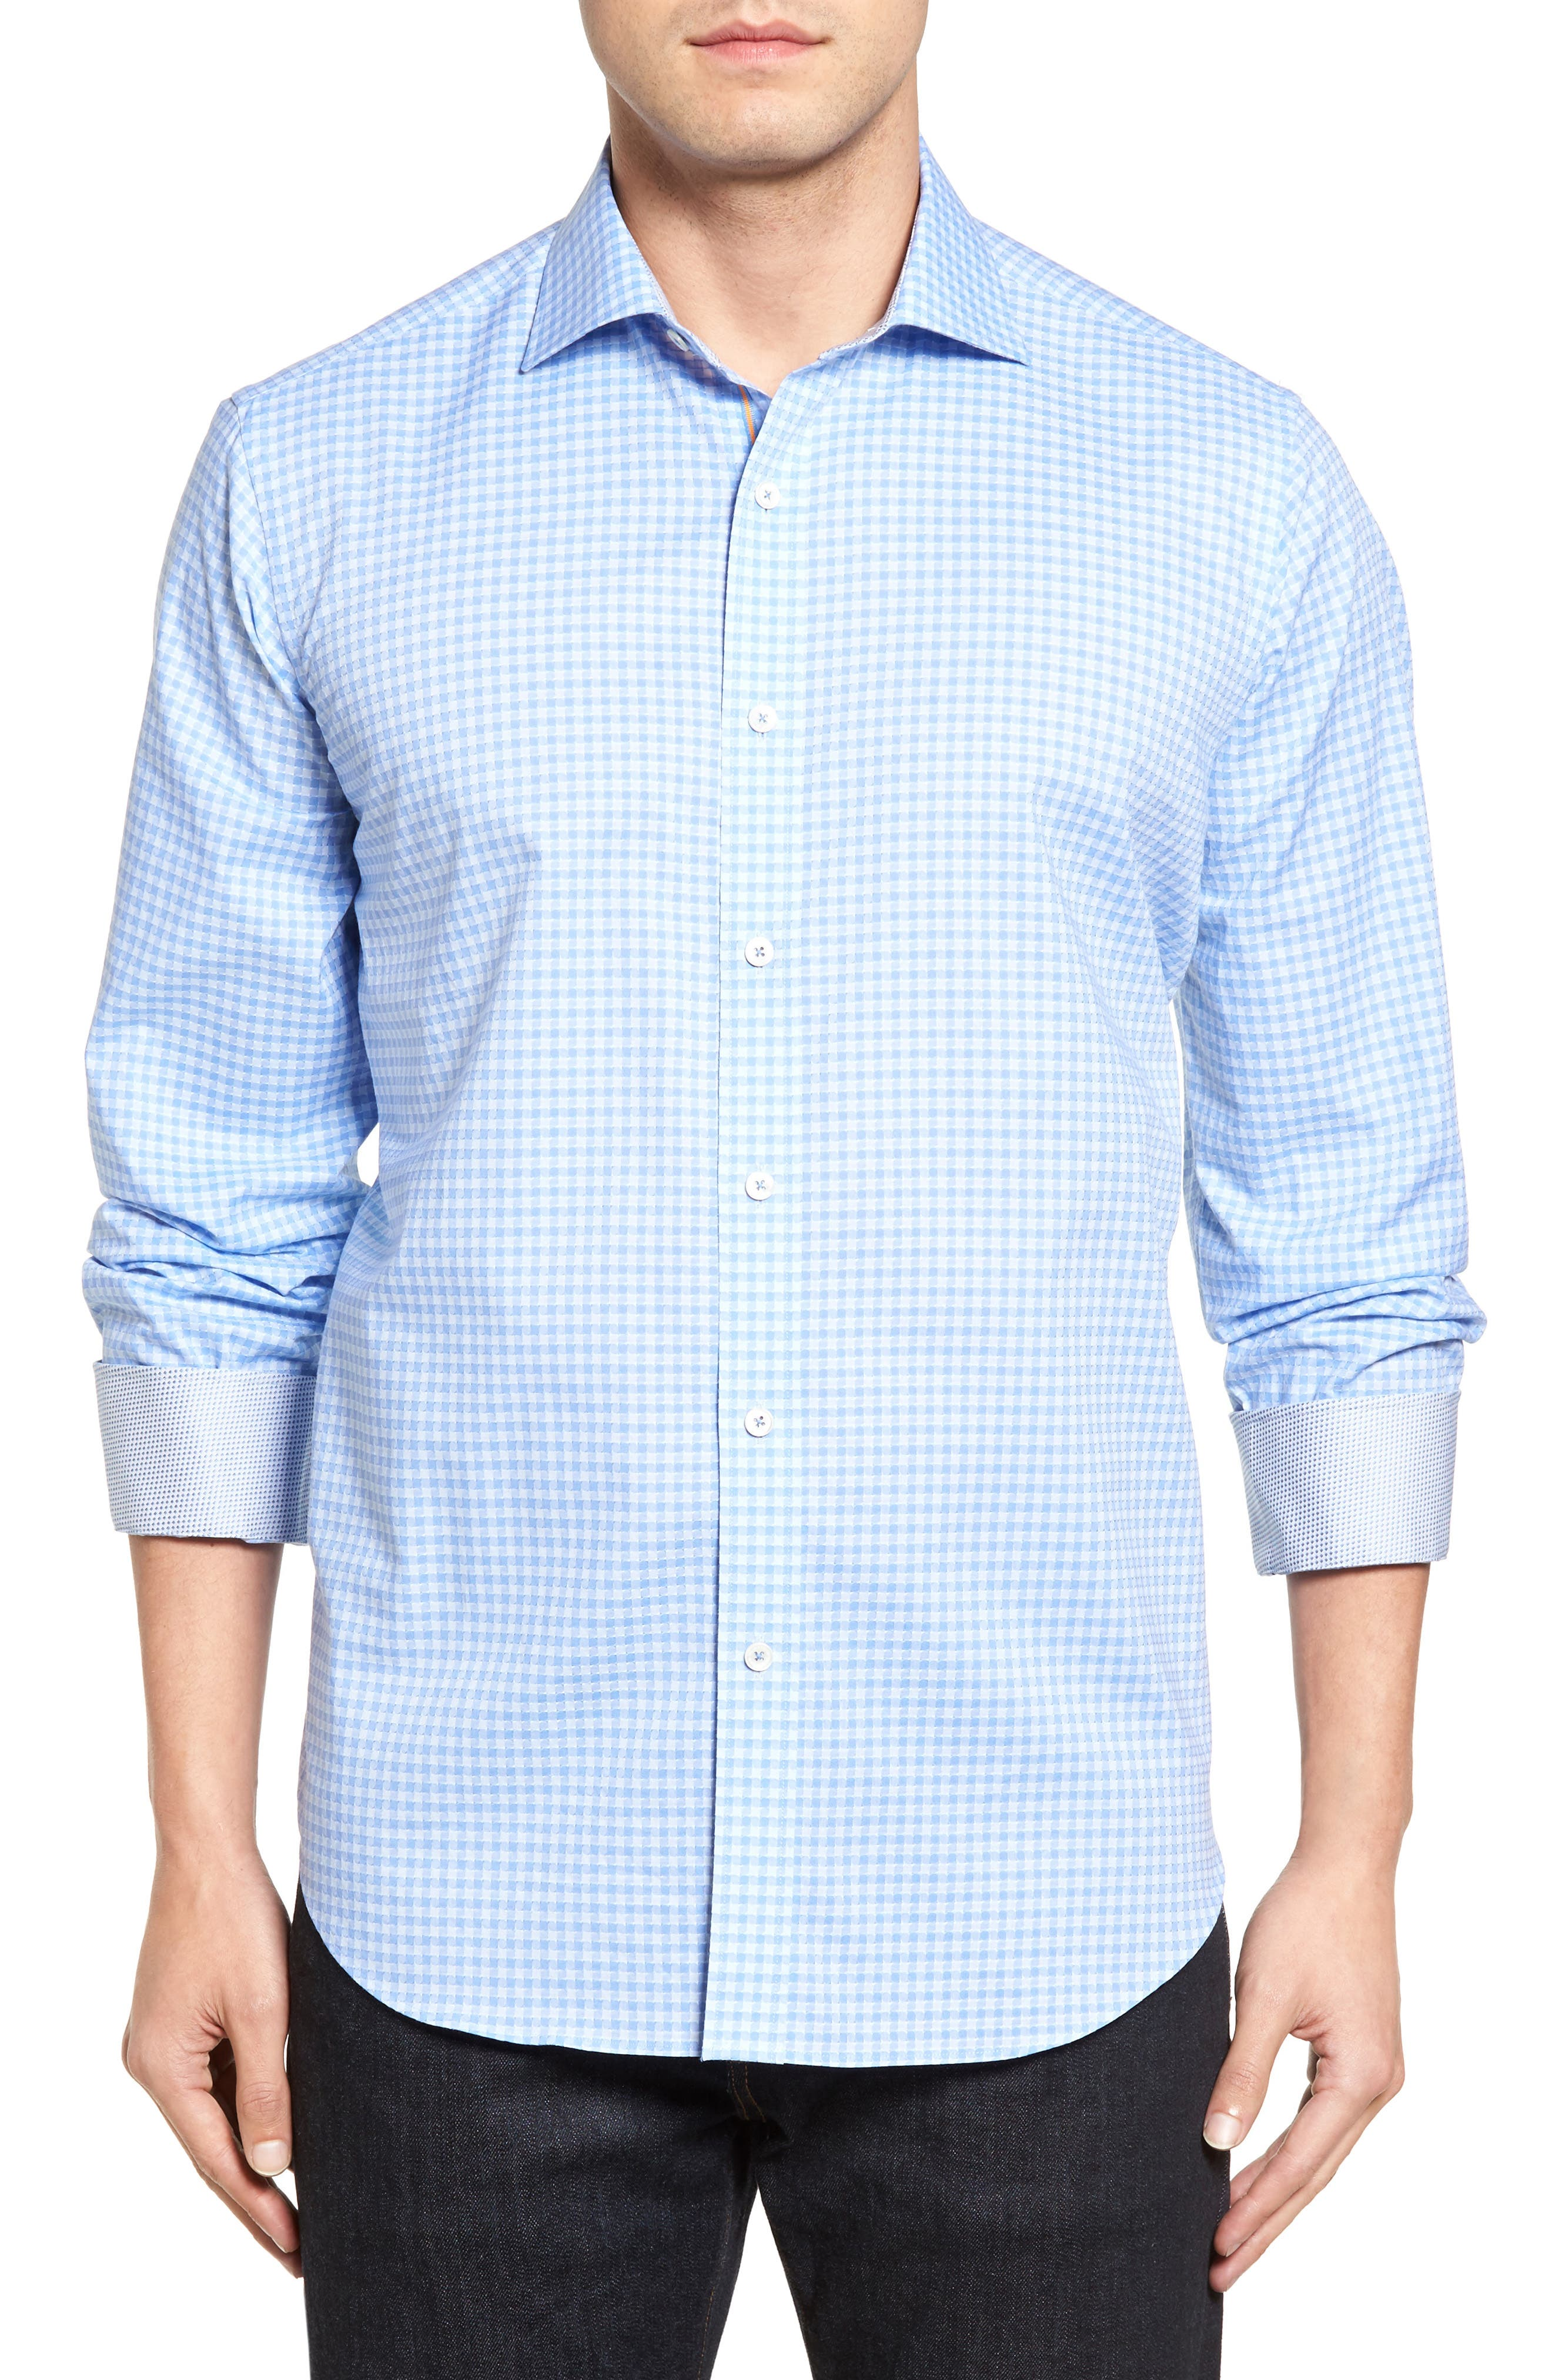 Alternate Image 1 Selected - Bugatchi Classic Fit Circle Check Sport Shirt